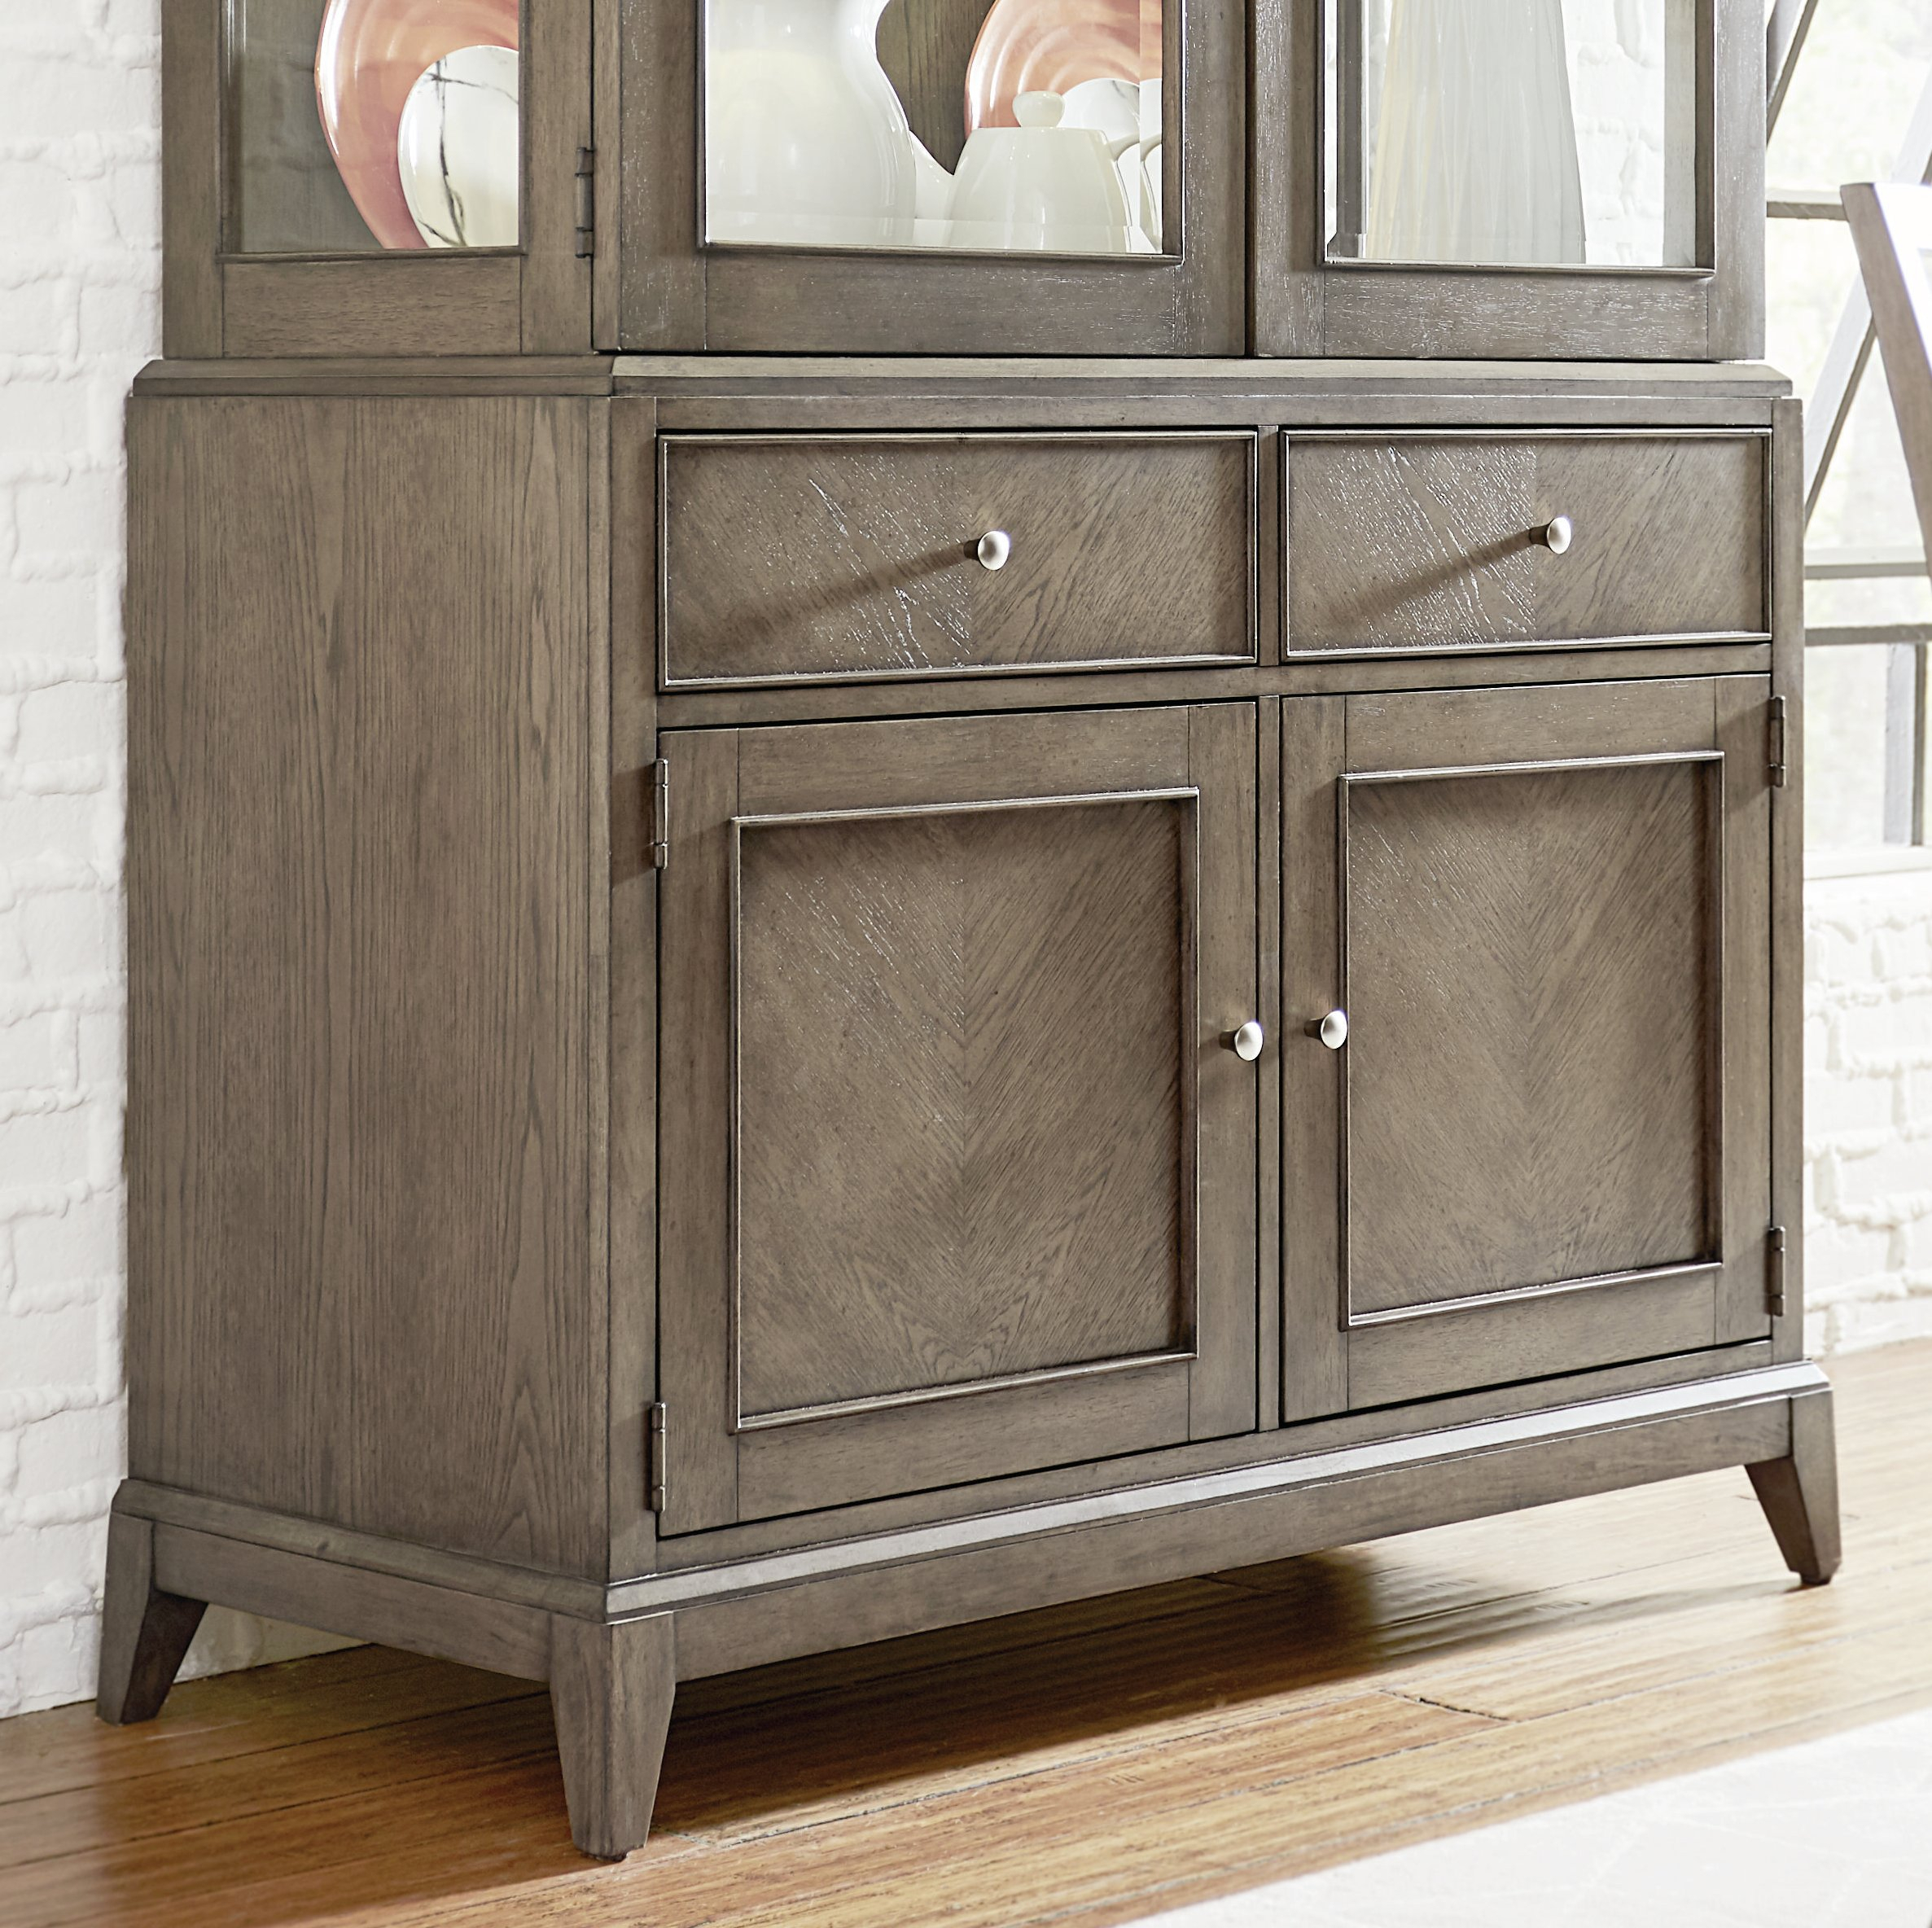 Narrow Dining Room Sideboards | Wayfair Pertaining To Most Popular Pineville Dining Sideboards (#13 of 20)